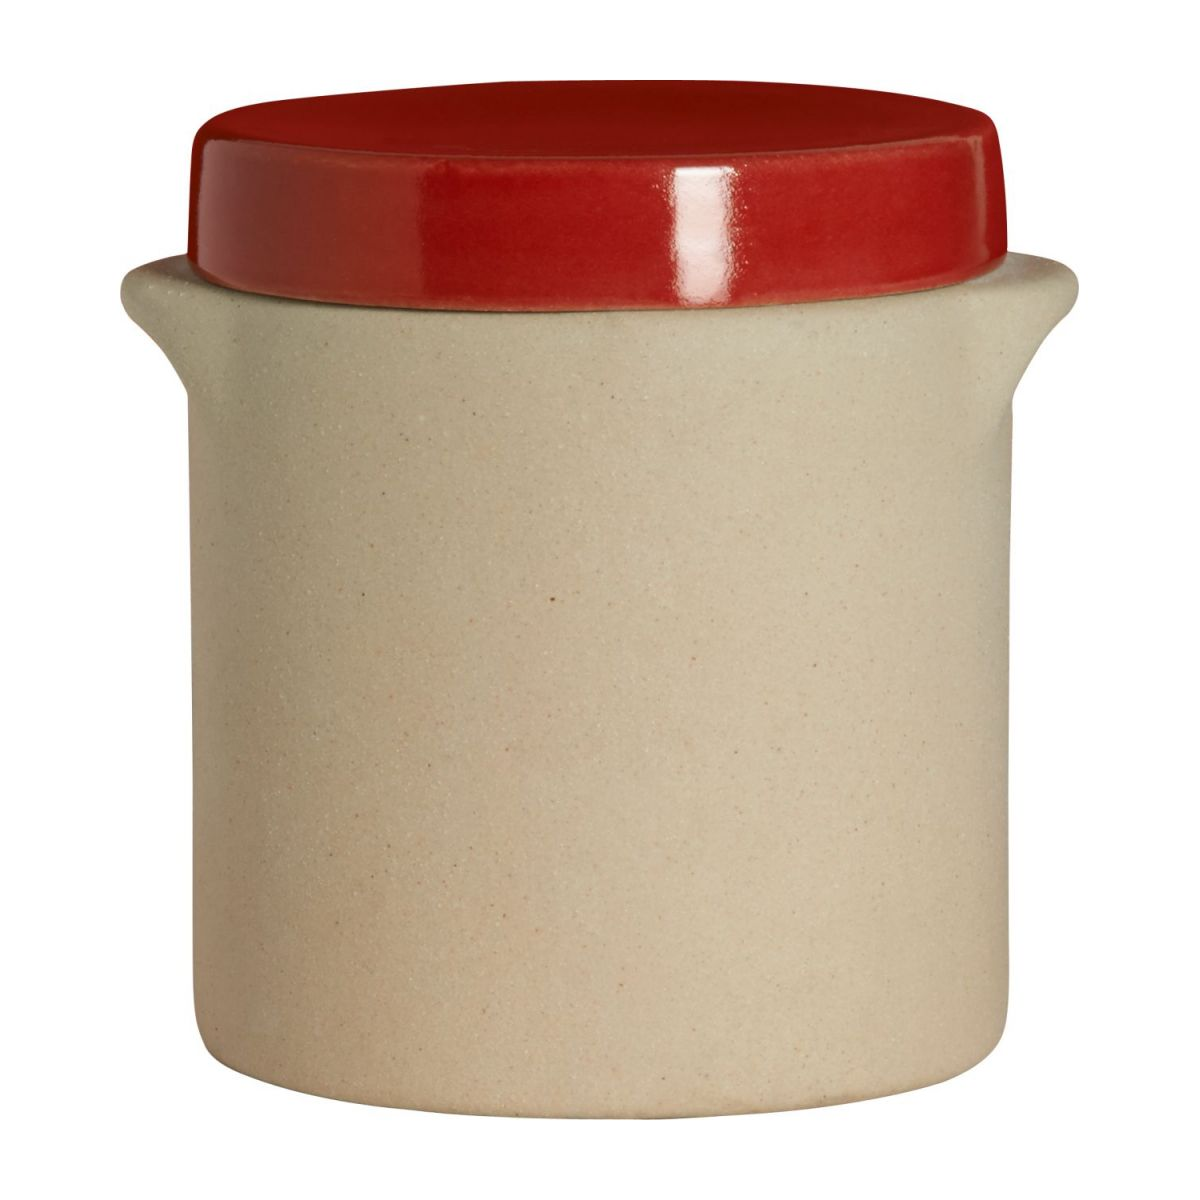 Box made in sandstone - 0,5L, natural and red n°3